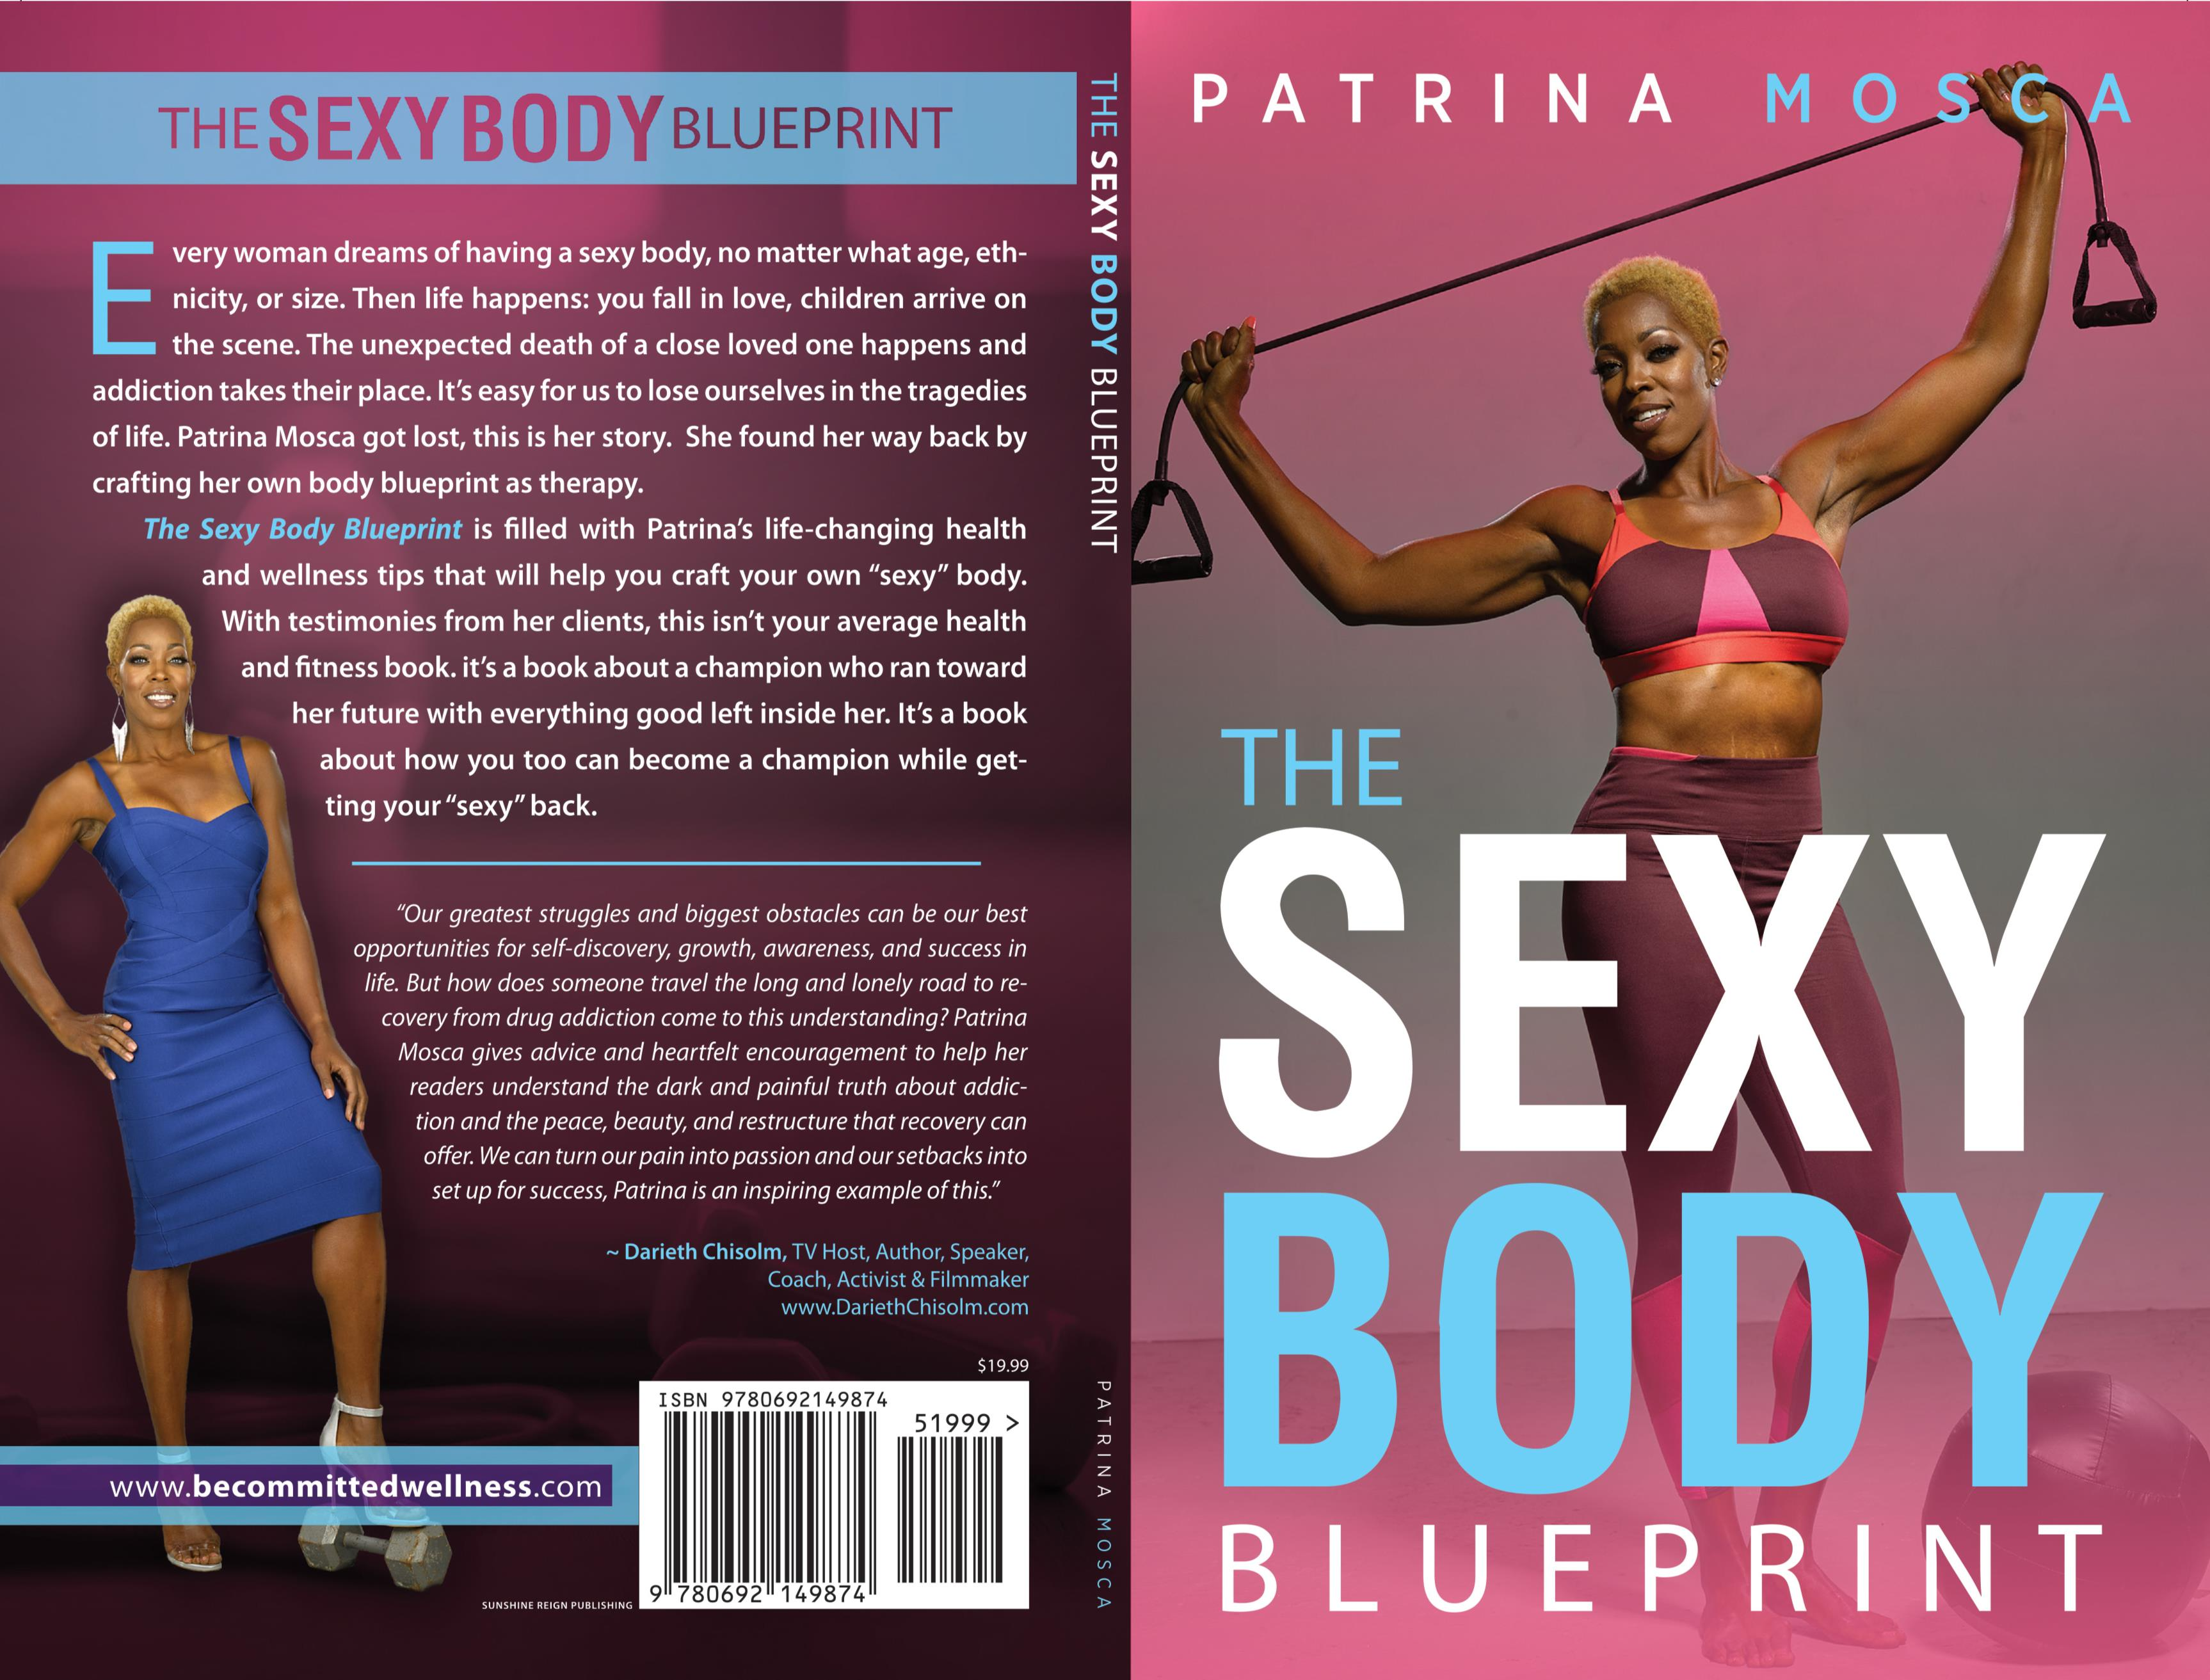 The Sexy Body Blueprint cover image